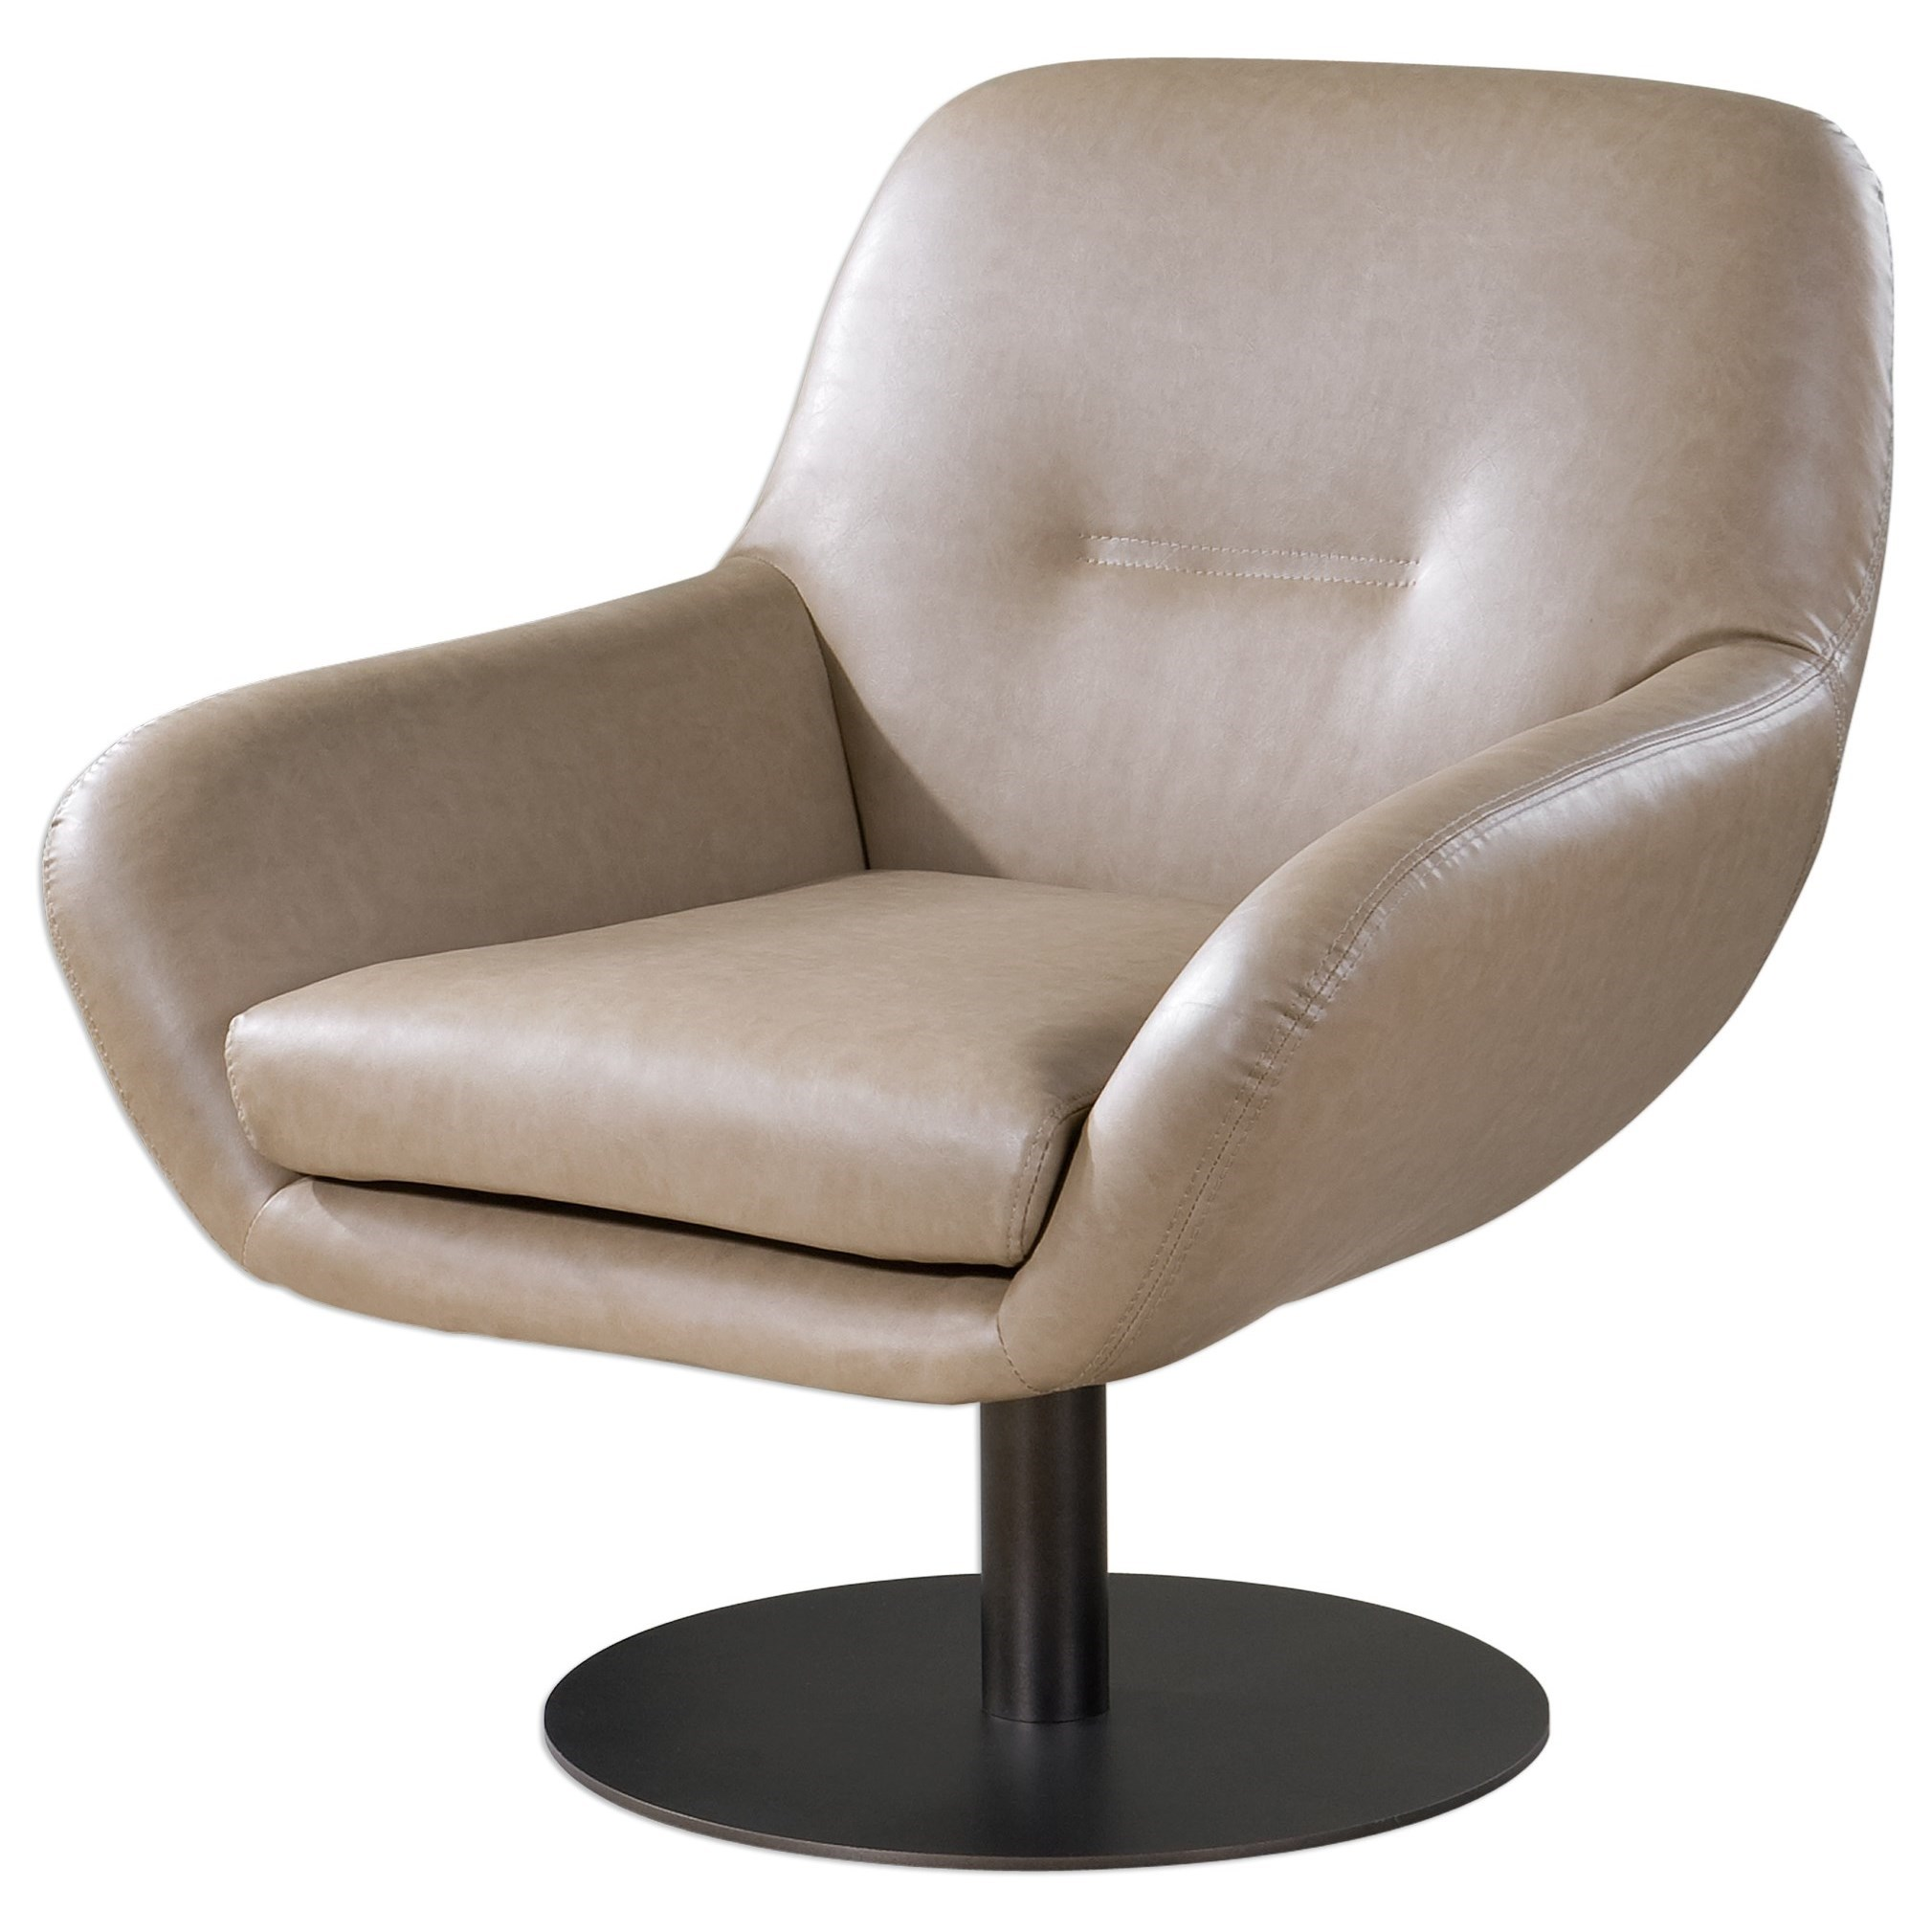 Uttermost Accent Furniture Scotlyn Swivel Chair - Item Number: 23266